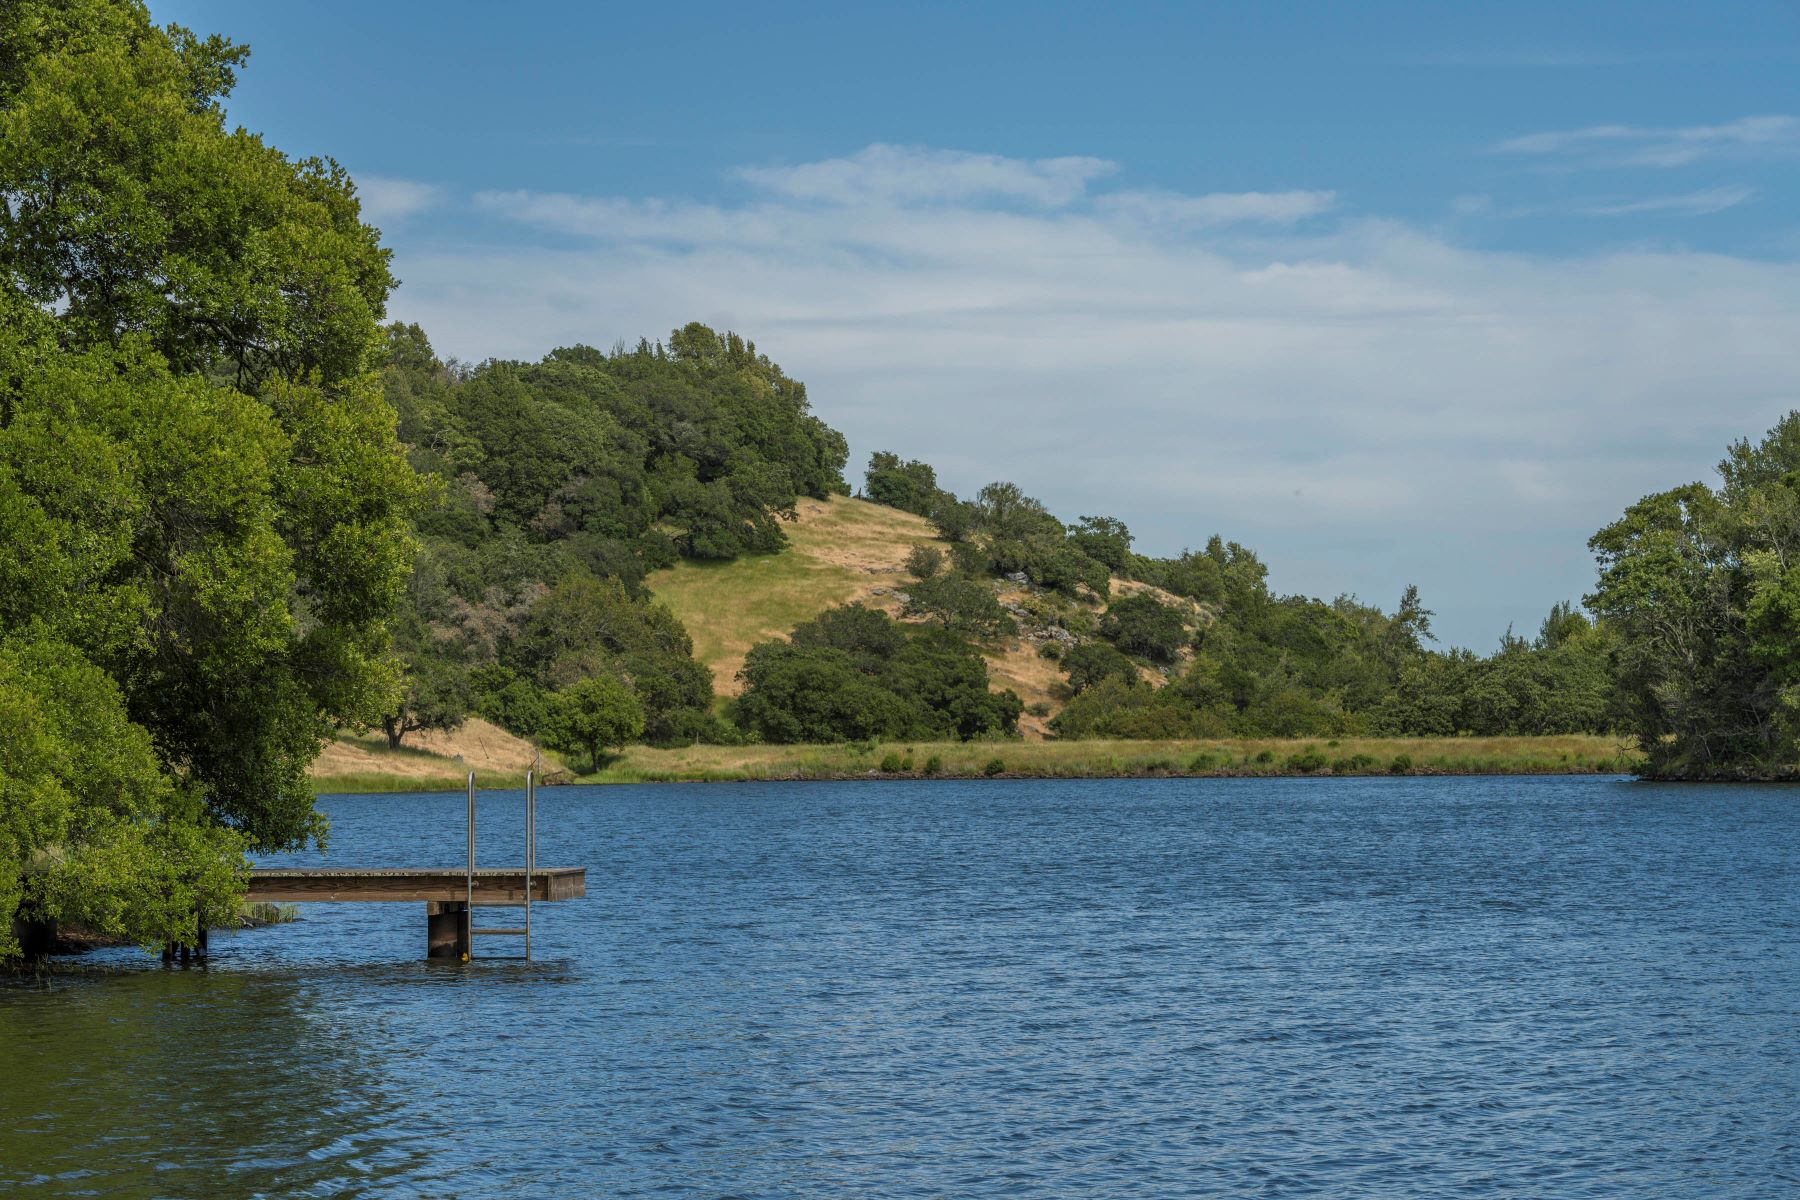 Vineyard Real Estate for Active at 950 ac in Napa Valley Heaven on Earth 1681 Green Valley Rd Napa, California 94558 United States